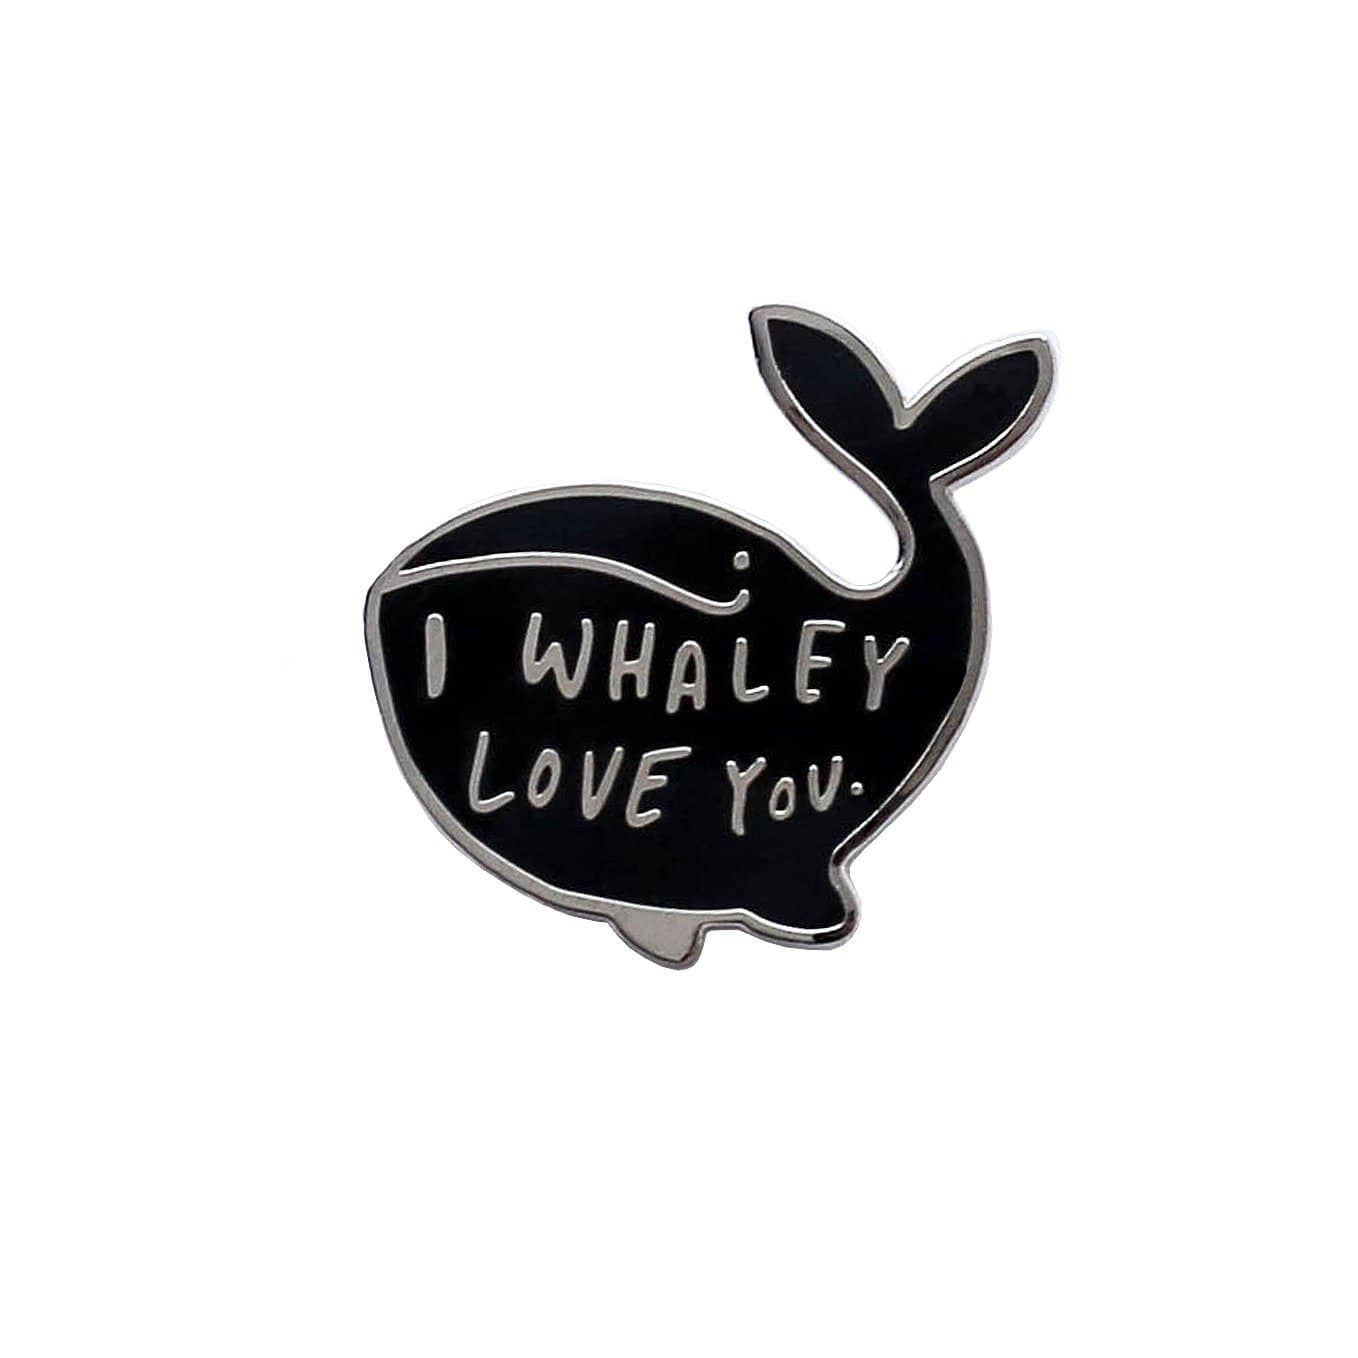 I whaley love you enamel pin